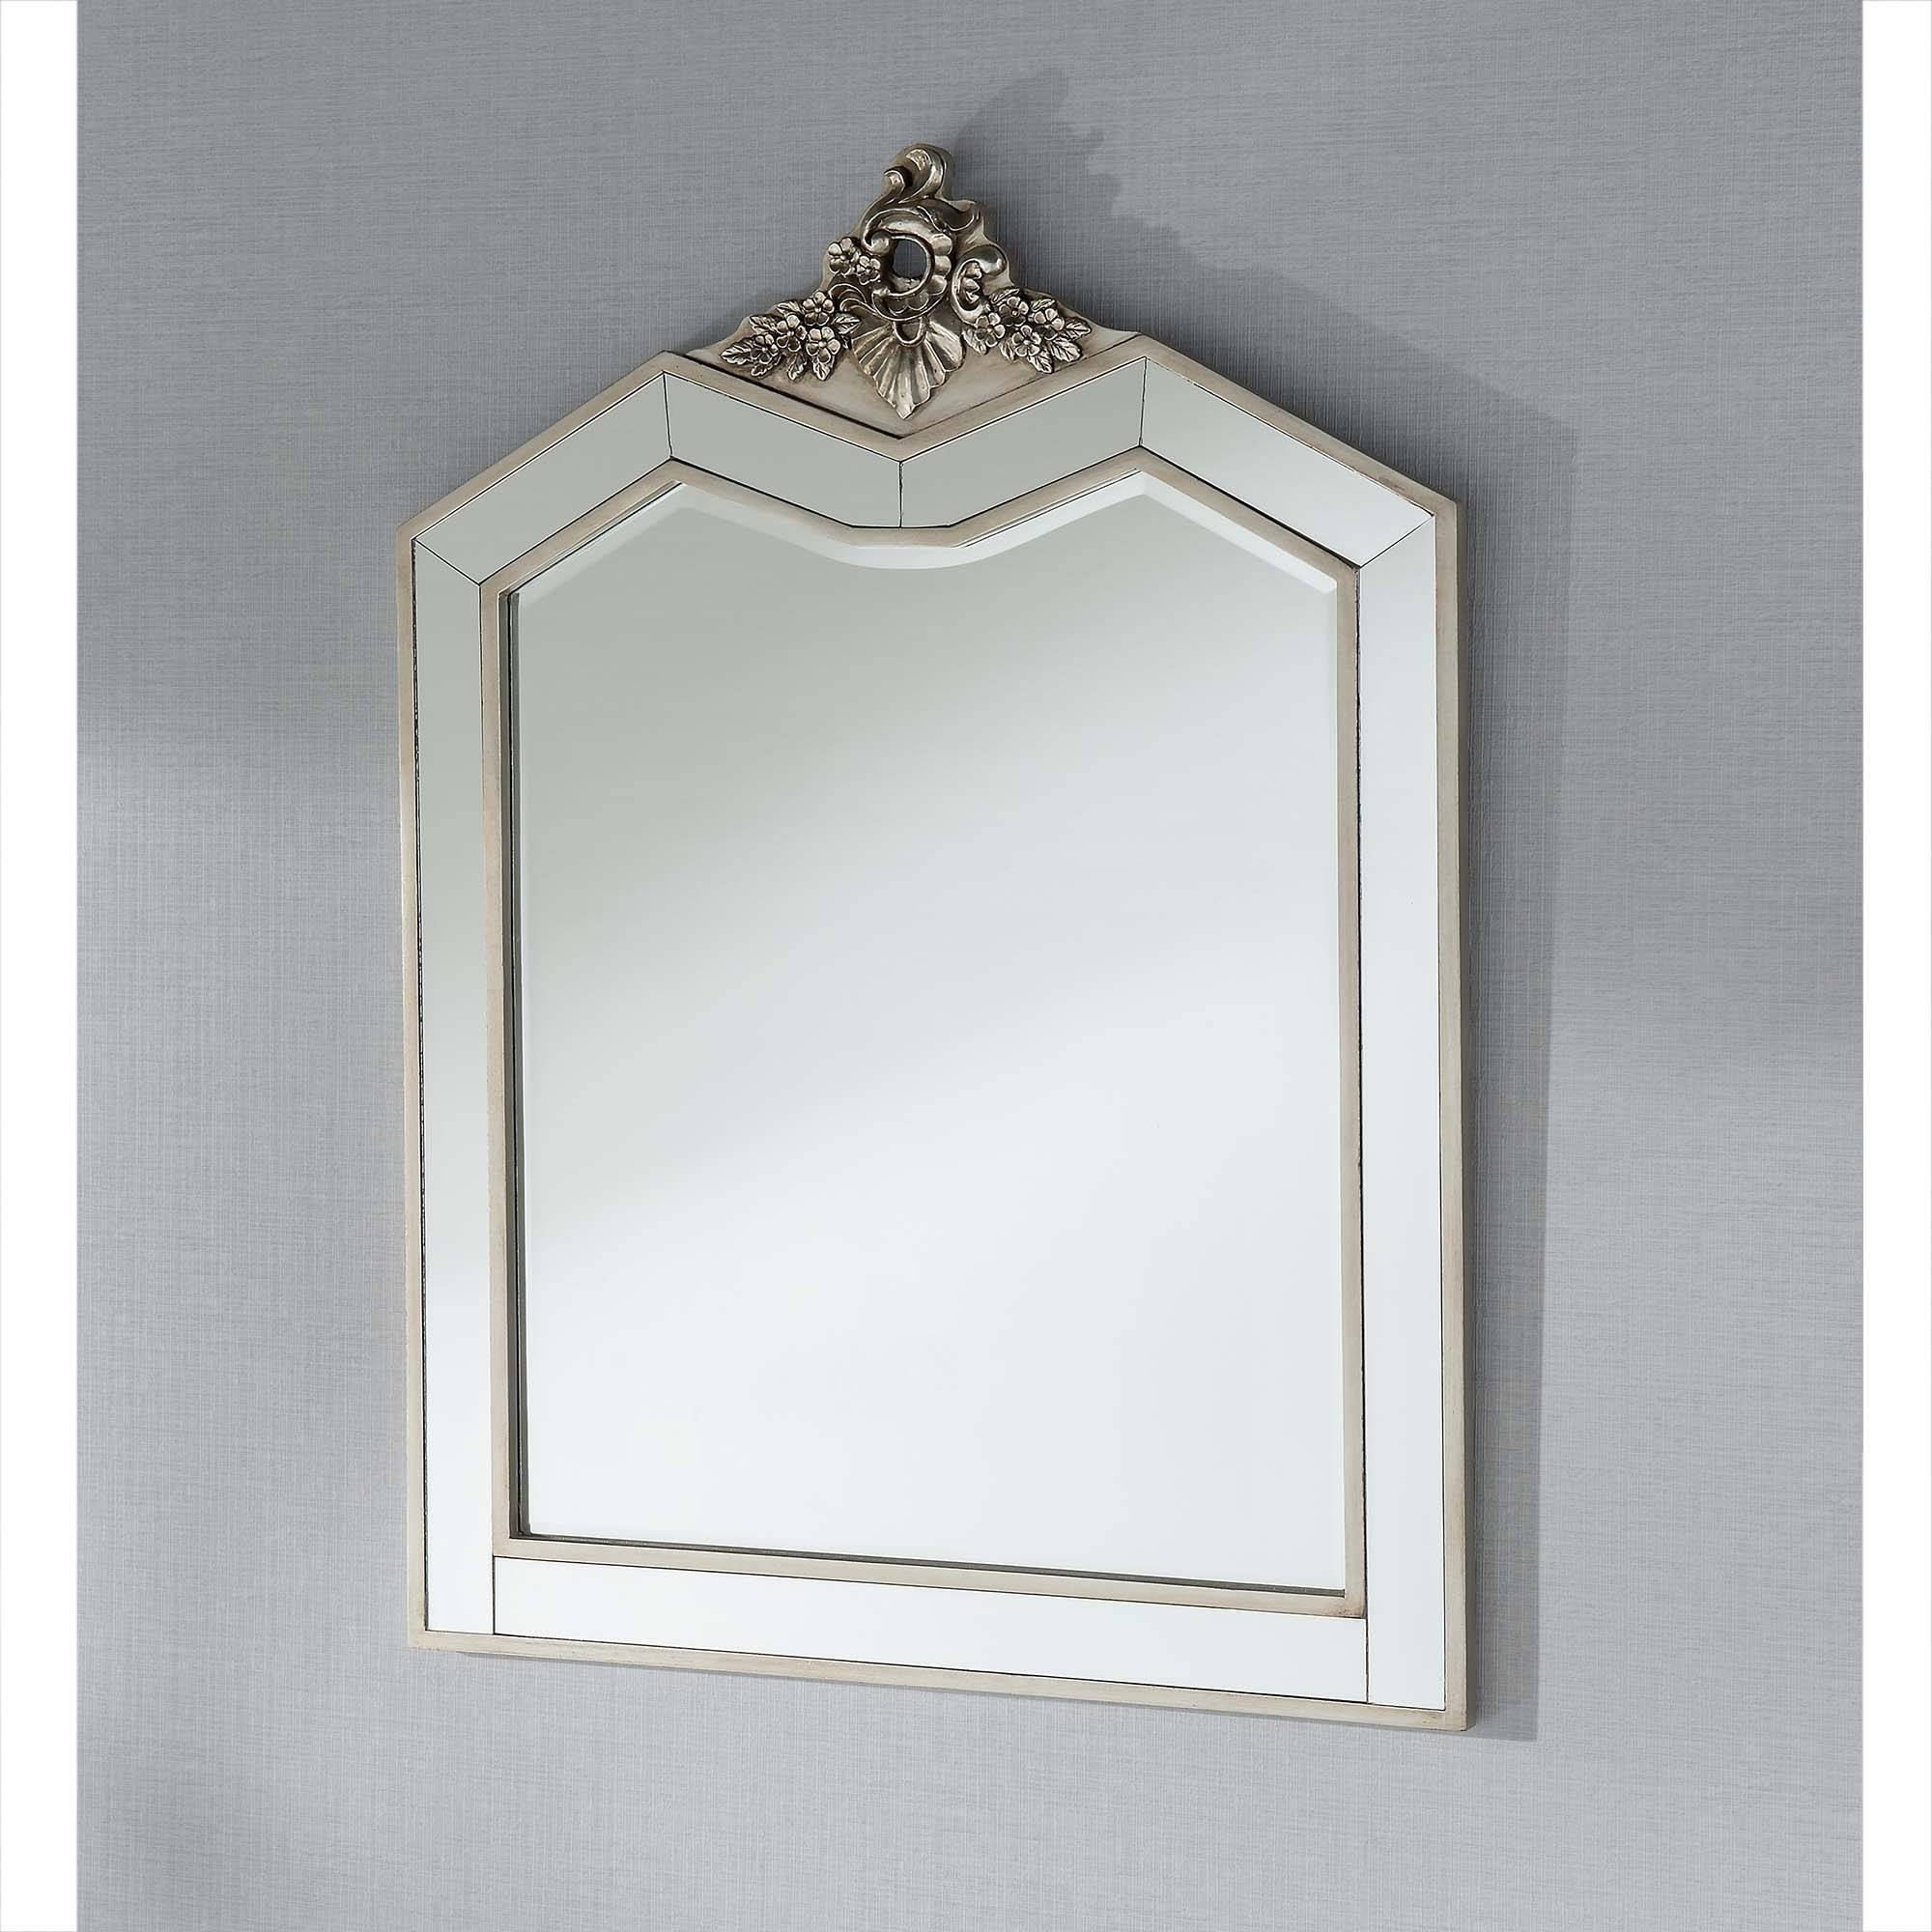 Argente Antique French Style Dressing Table Mirror - French with regard to French Style Dressing Table Mirrors (Image 6 of 25)